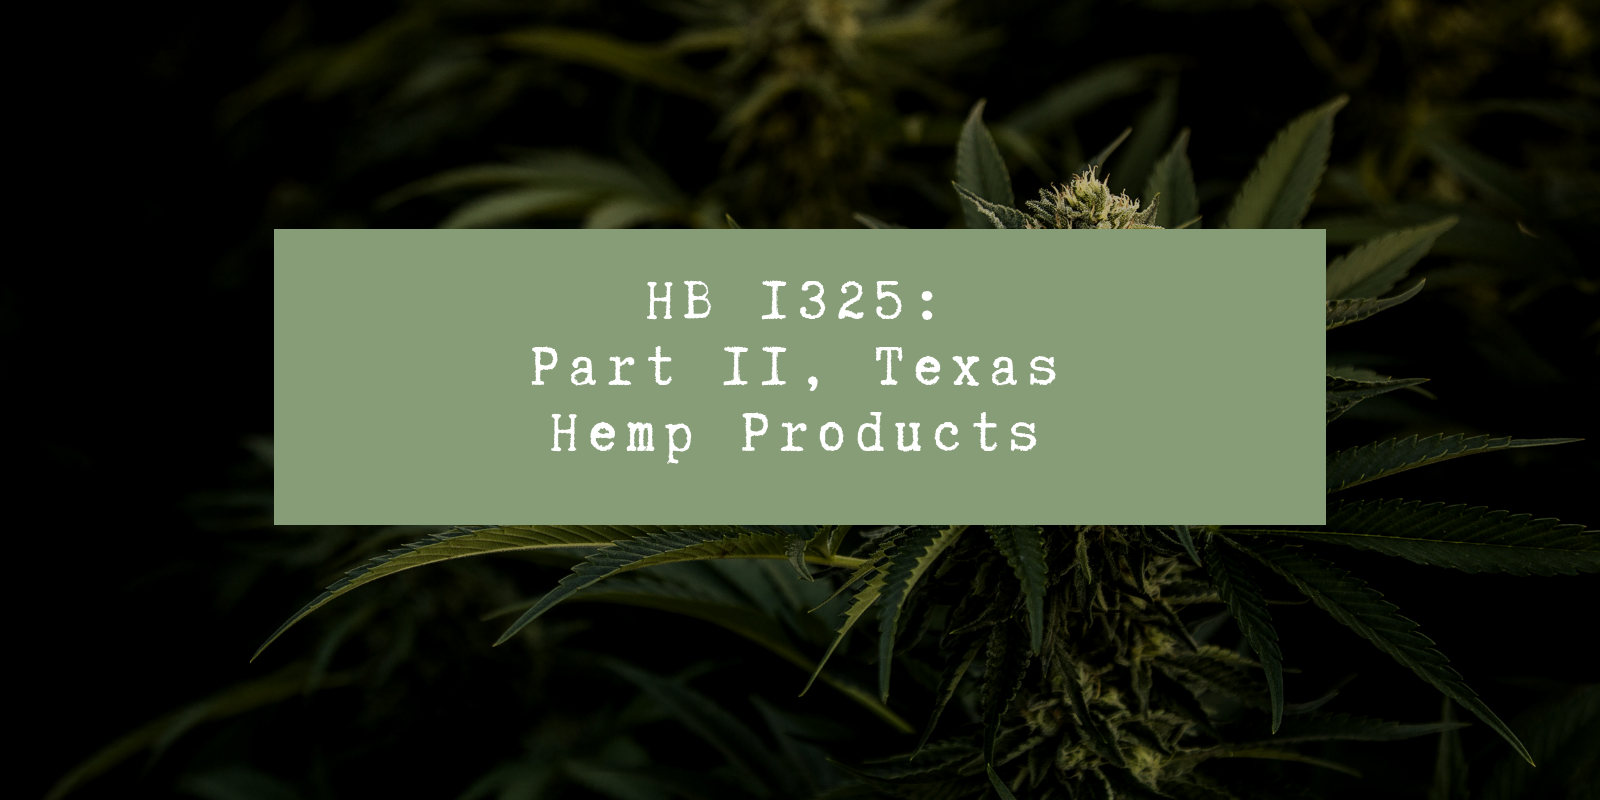 HB 1325: Texas Hemp Products, Part II